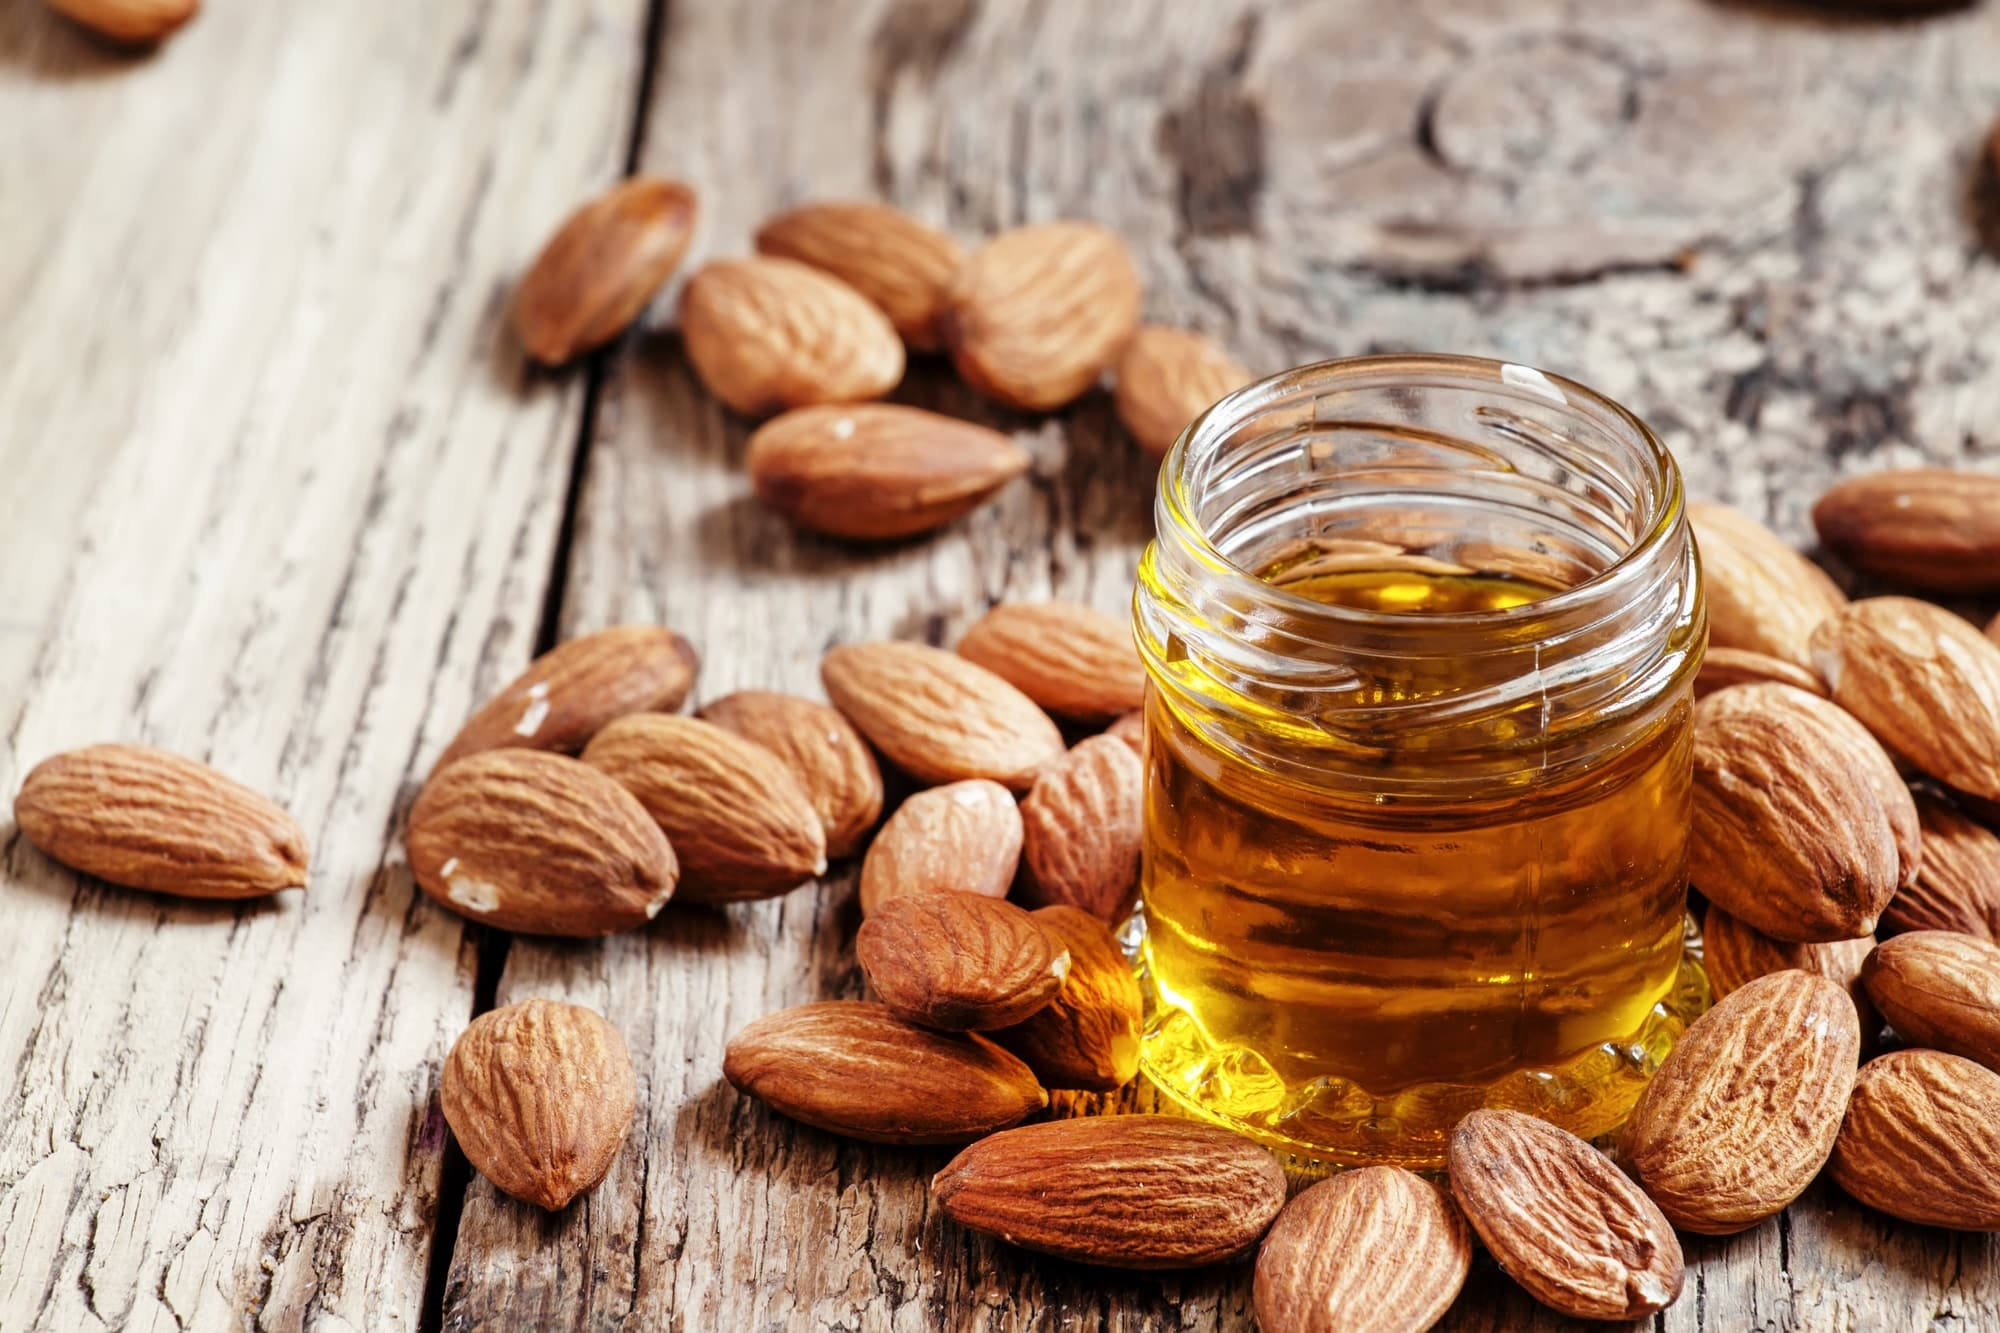 Almond Extract Substitute